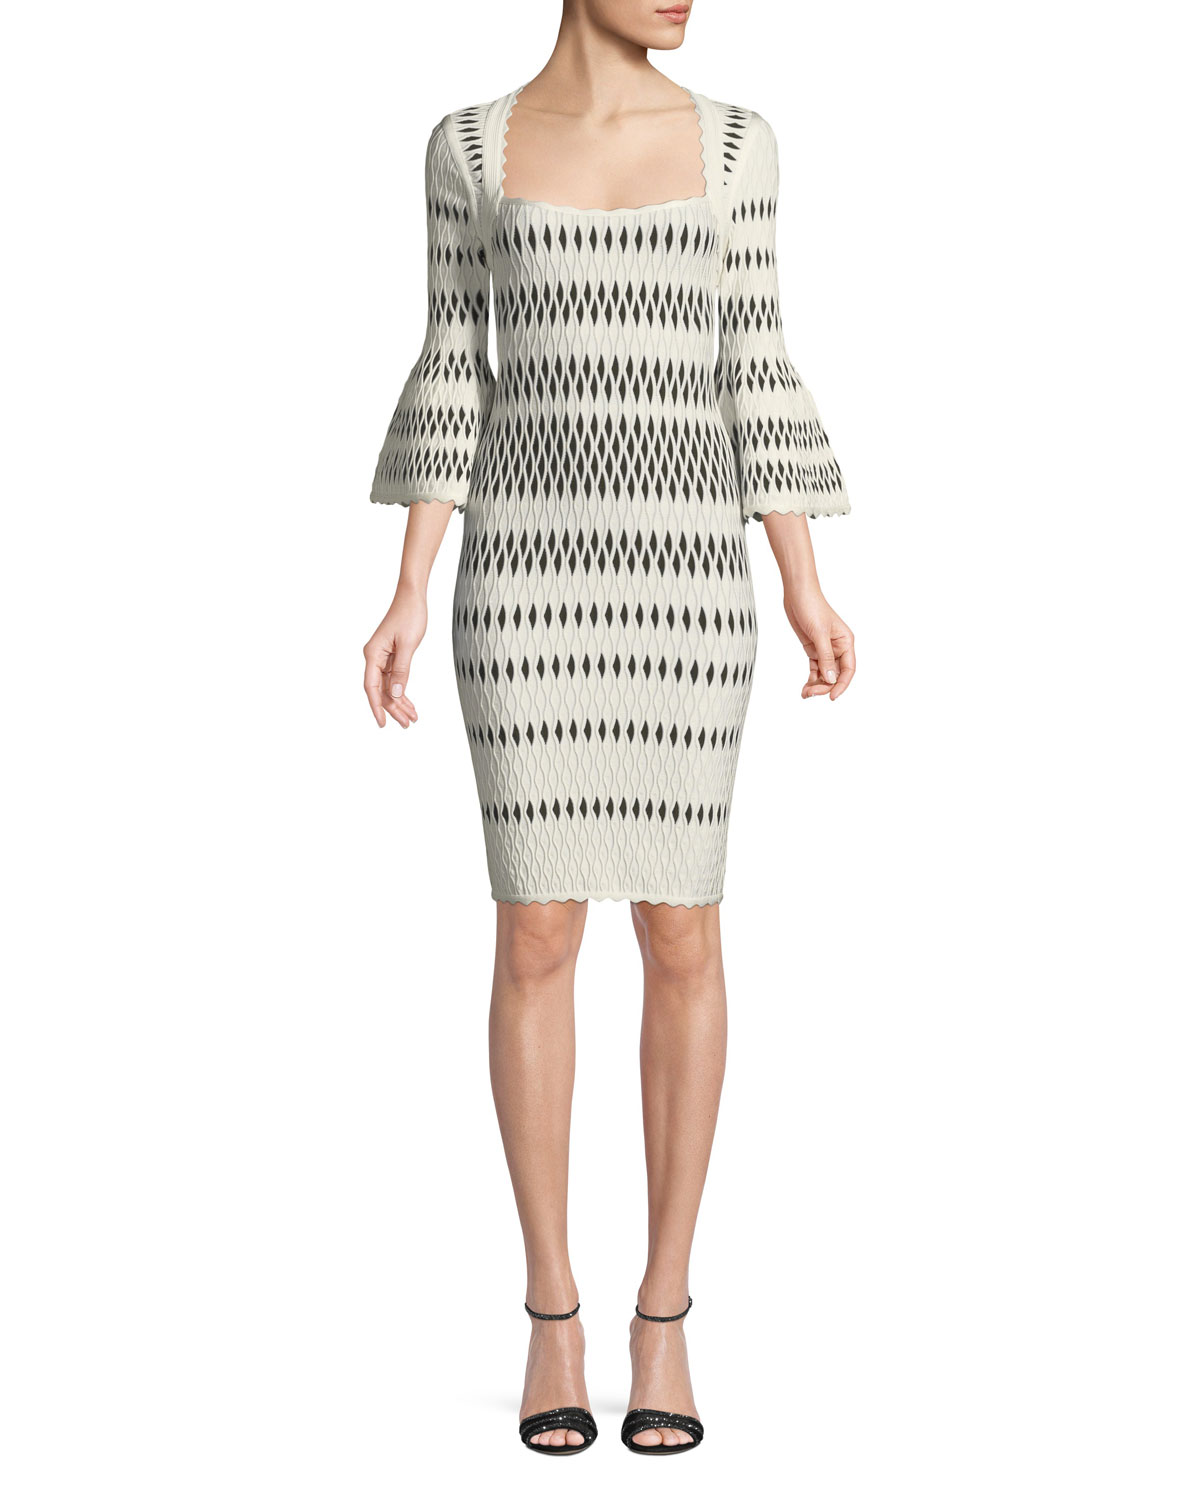 Herve Leger  BELL-SLEEVE WAVY JACQUARD BODY-CON COCKTAIL DRESS